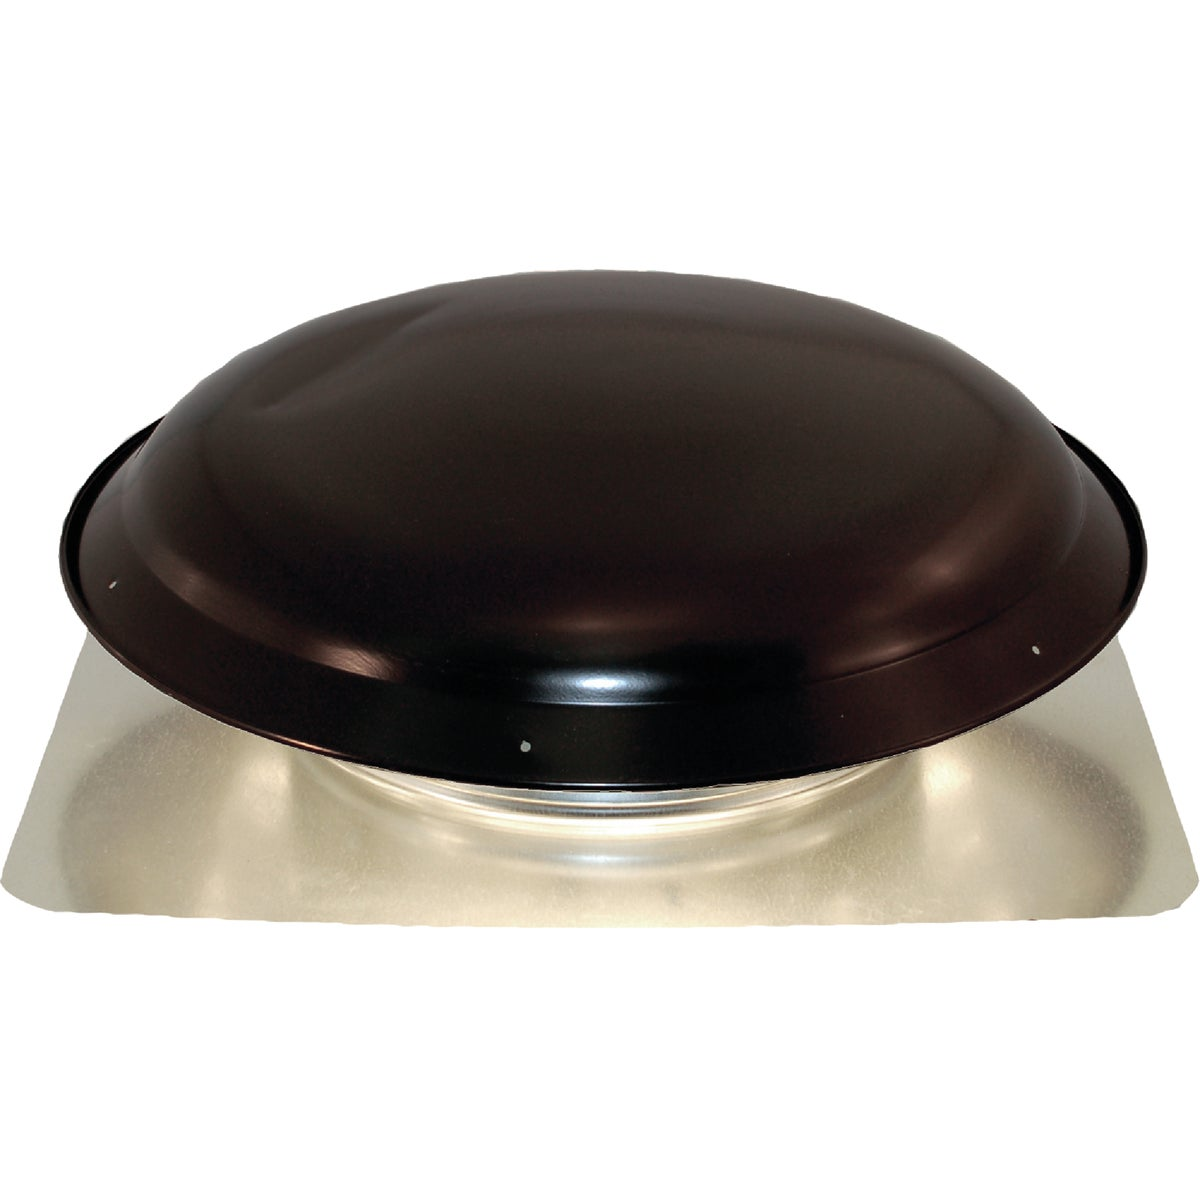 BLACK STATIC ROOF VENT - VX25BLK by Ventamatic Ltd